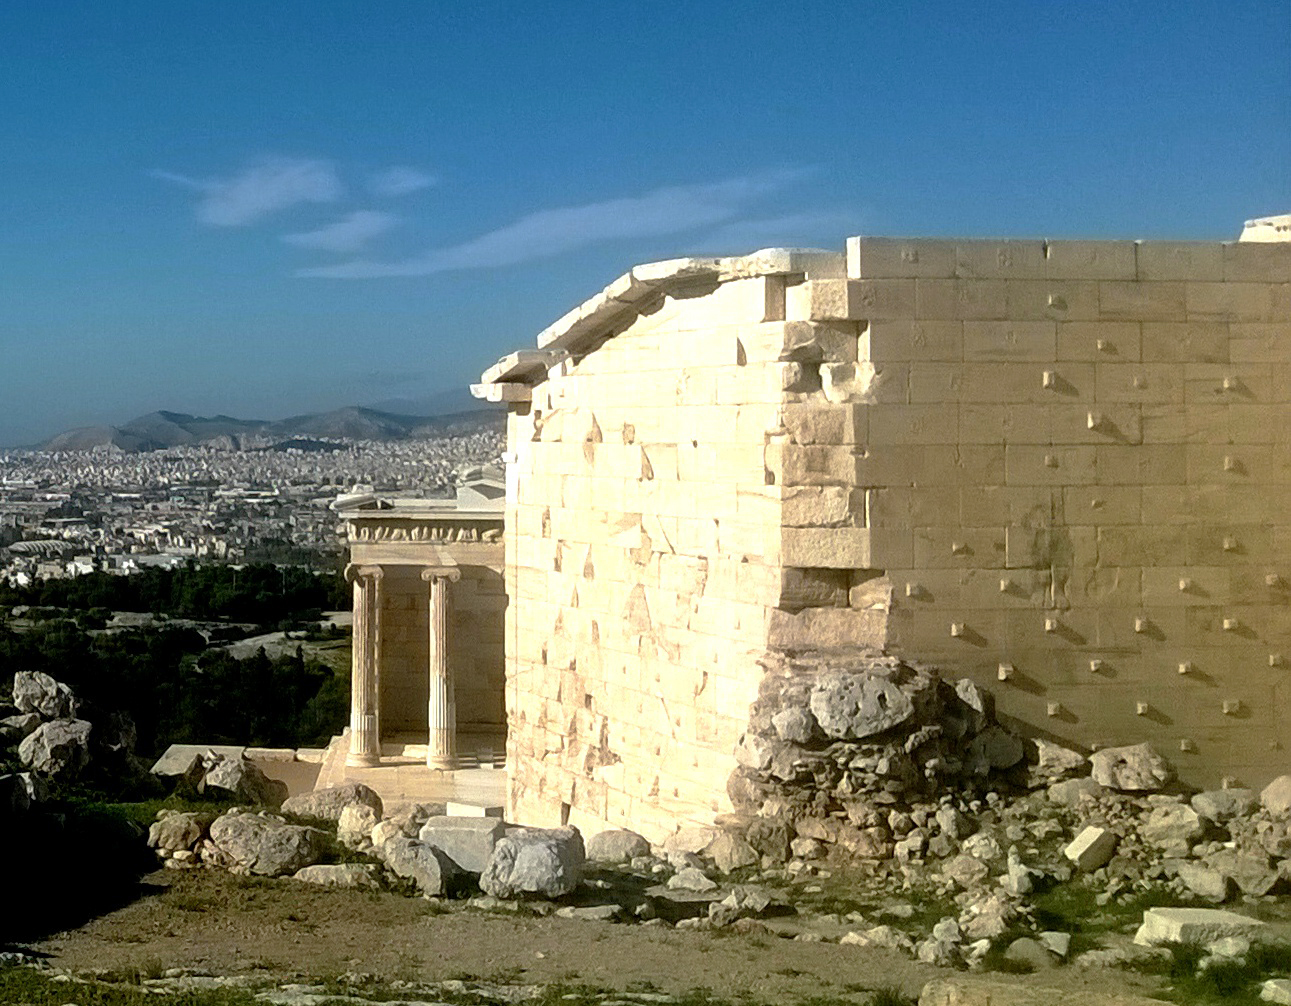 Small square protrusions, known as ancones, can be seen at the rear wall of Acropolis' monumental gateway